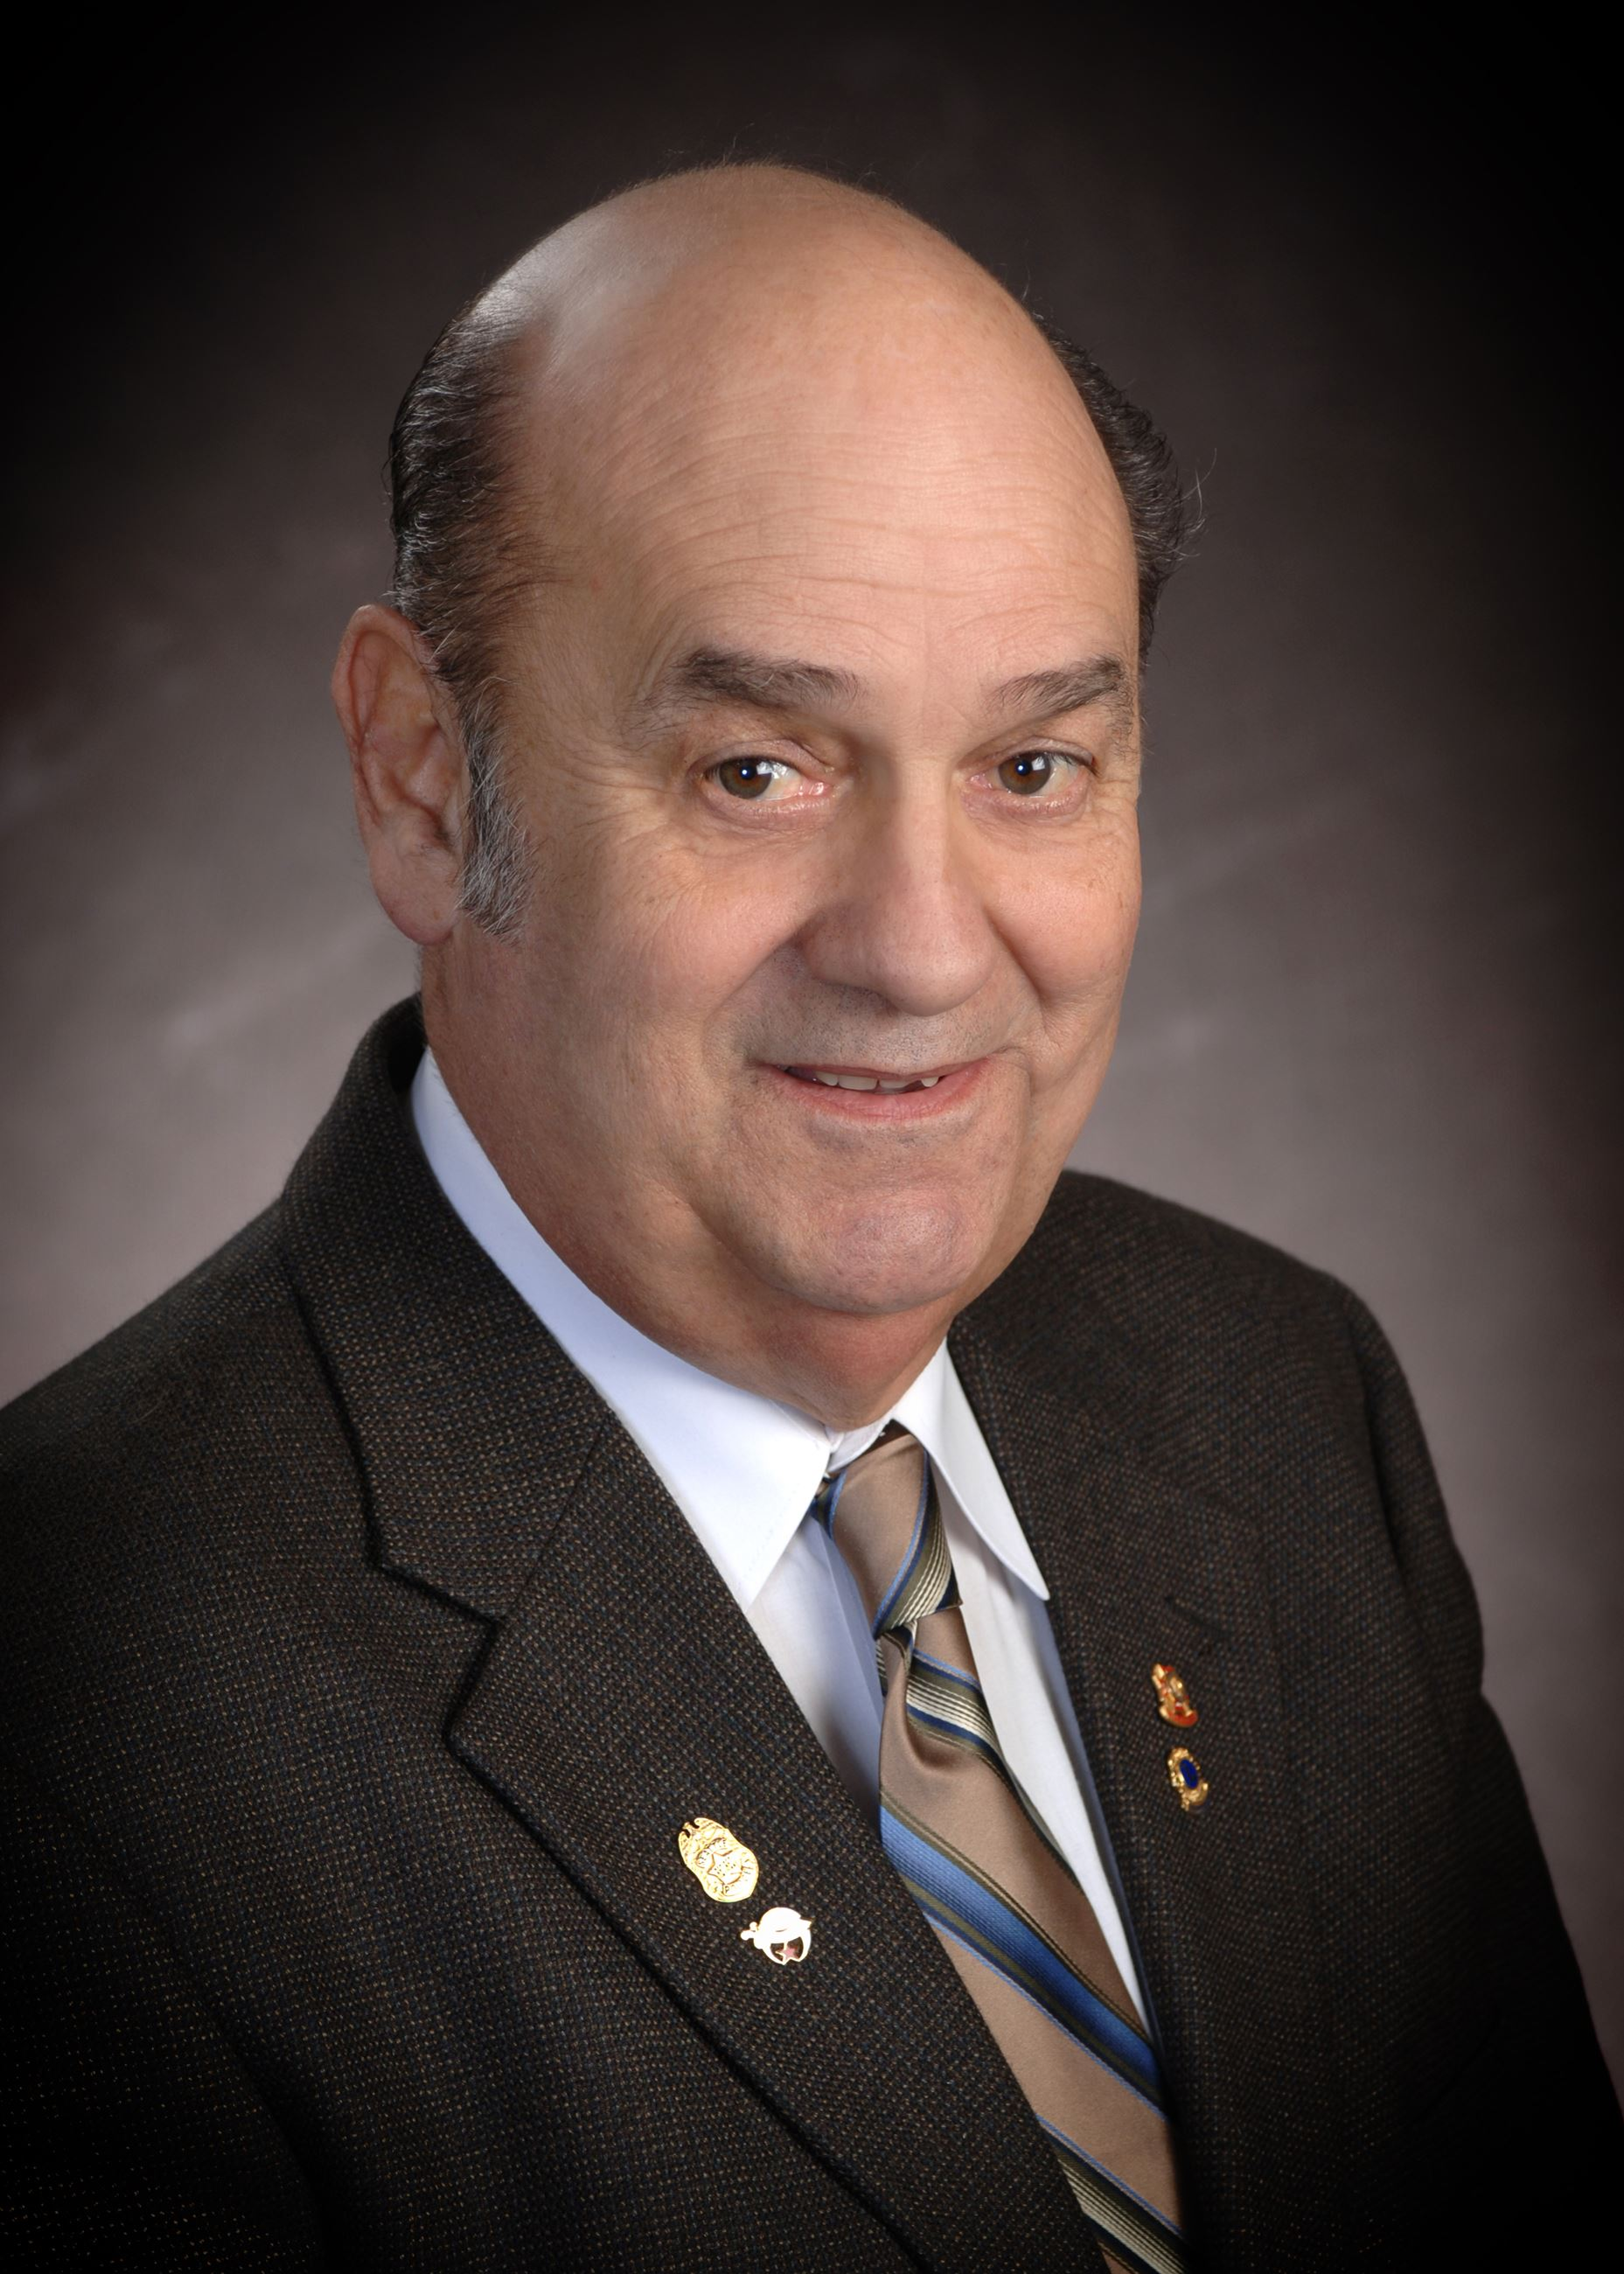 Mayor Smith